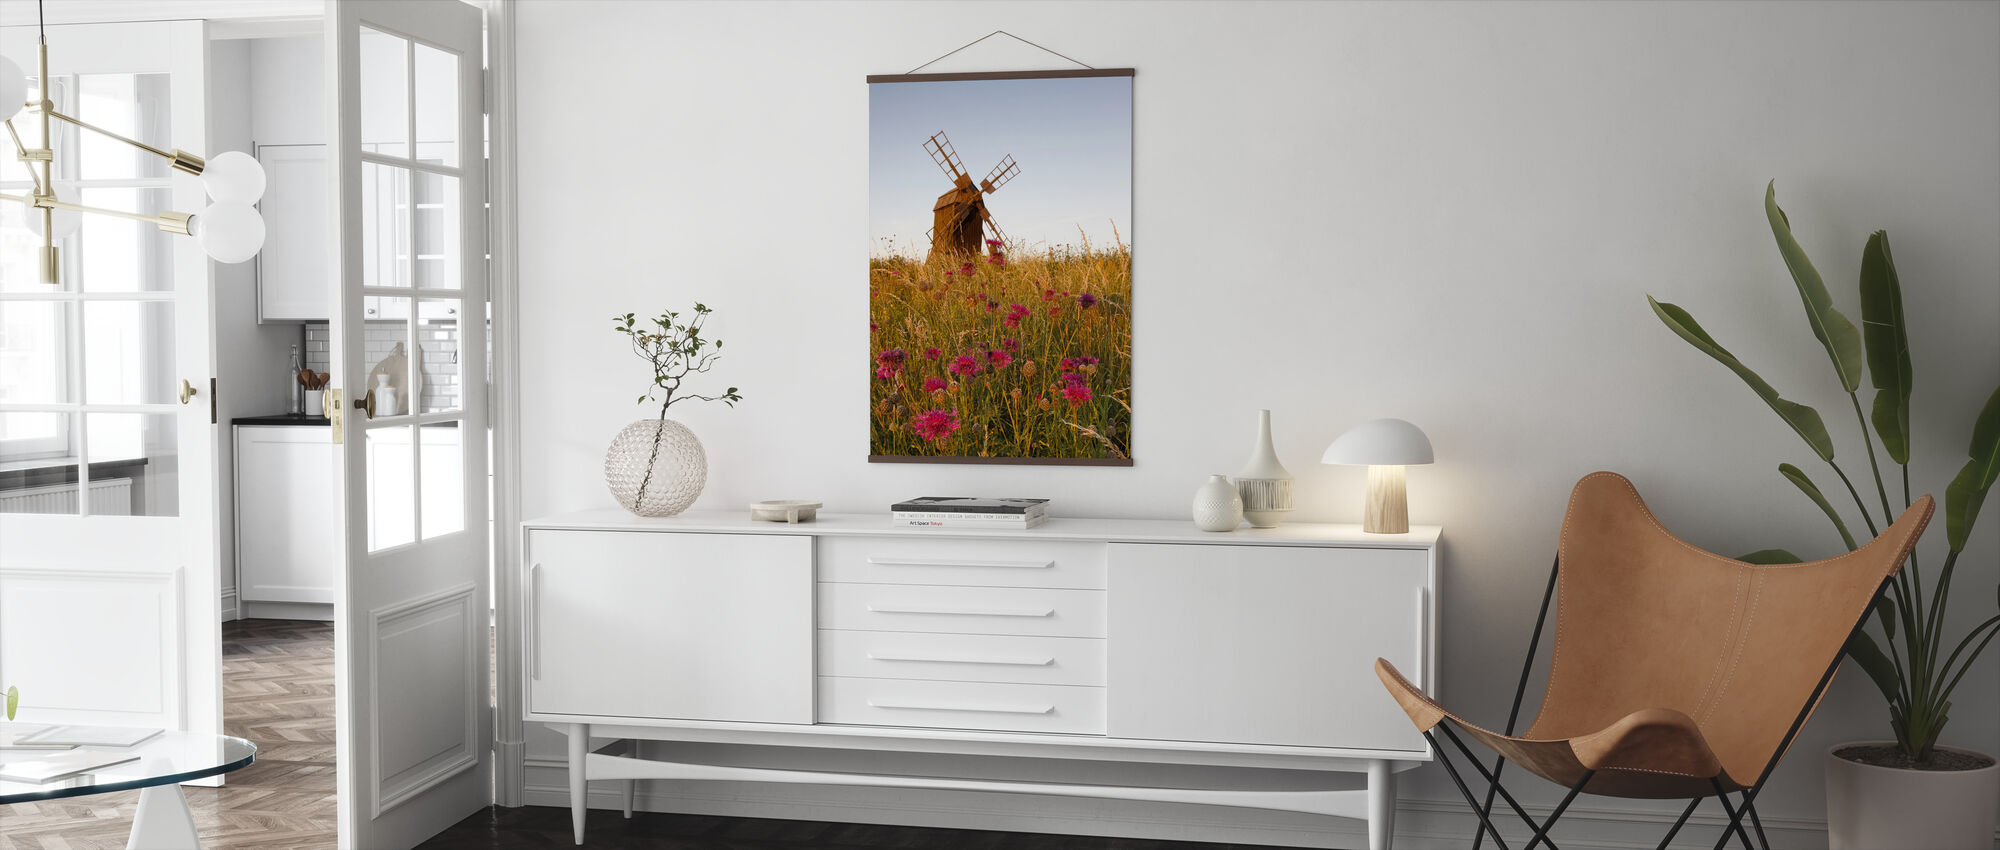 Grainy Windmill - Poster - Living Room